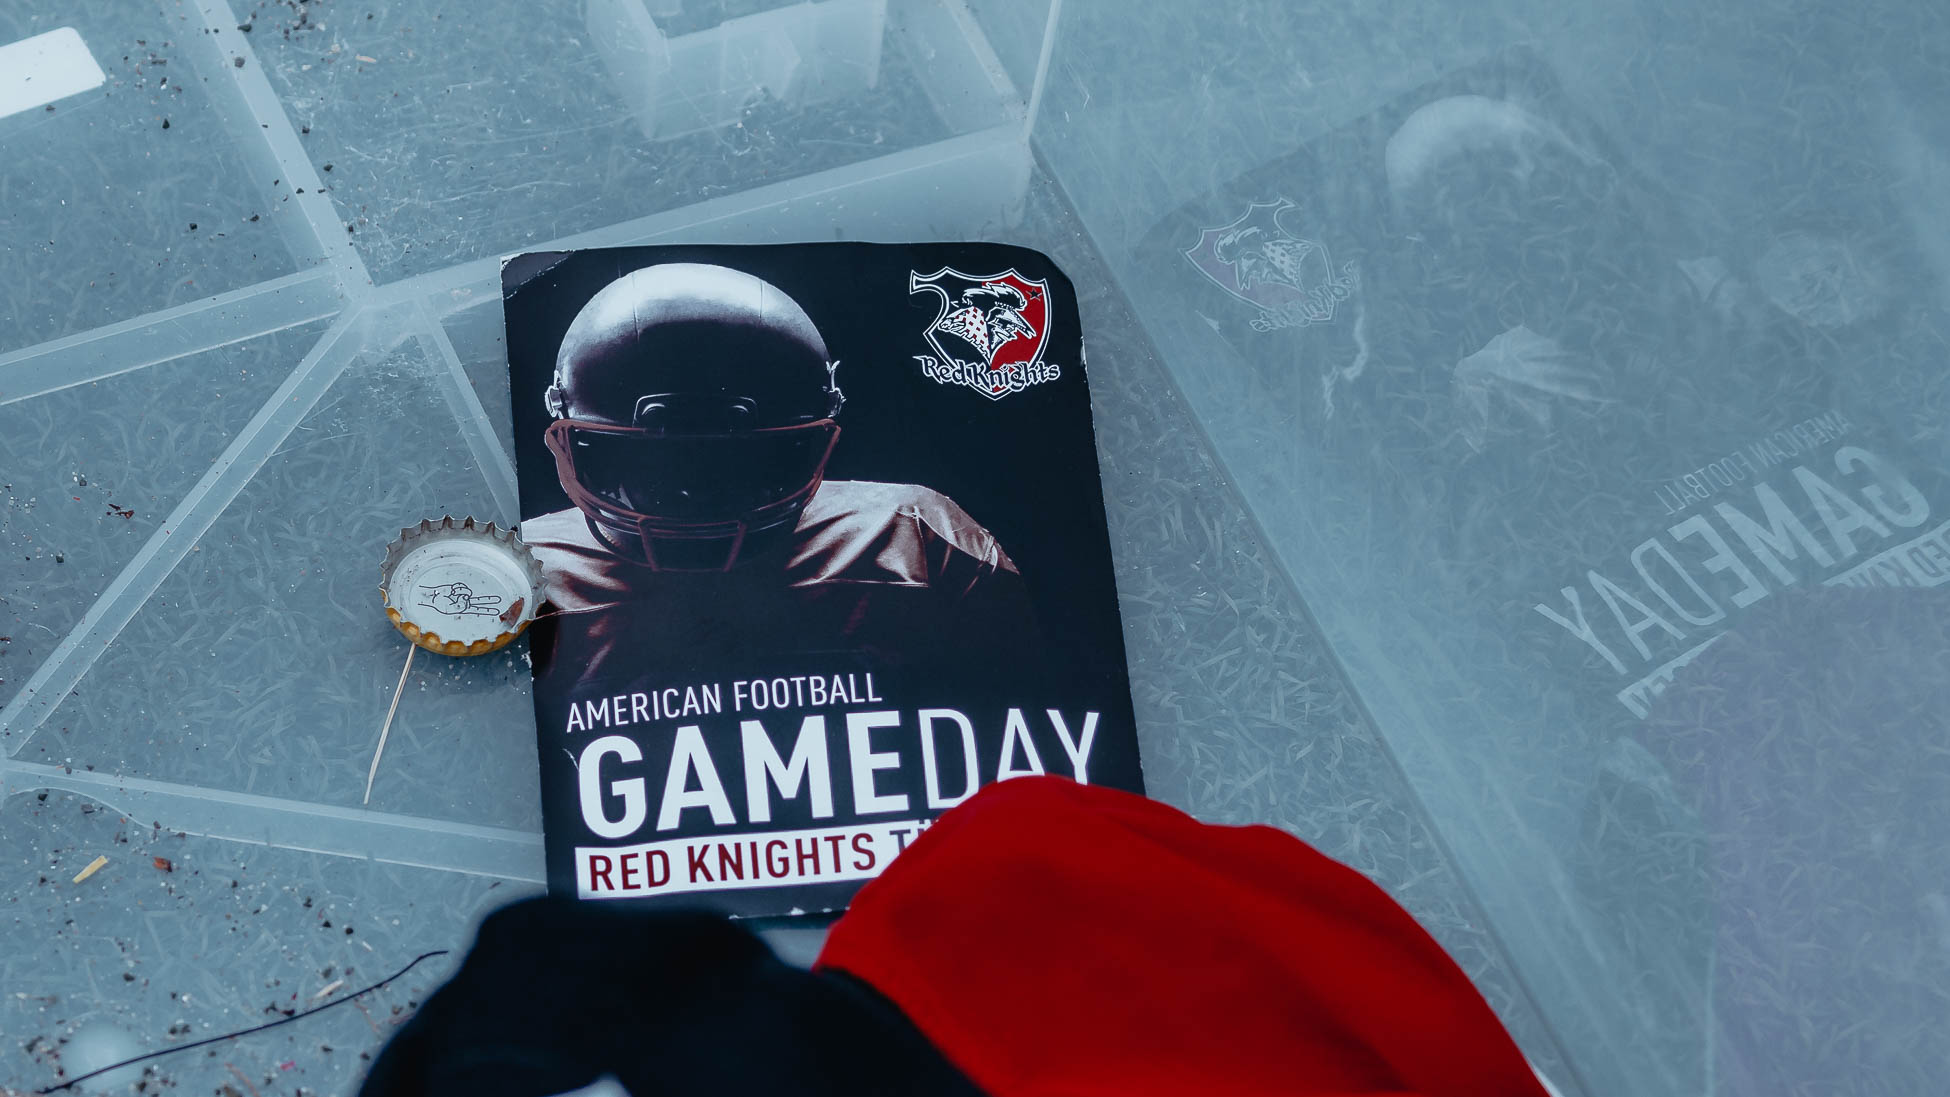 Gameday Card American Football Tübingen Red Knights